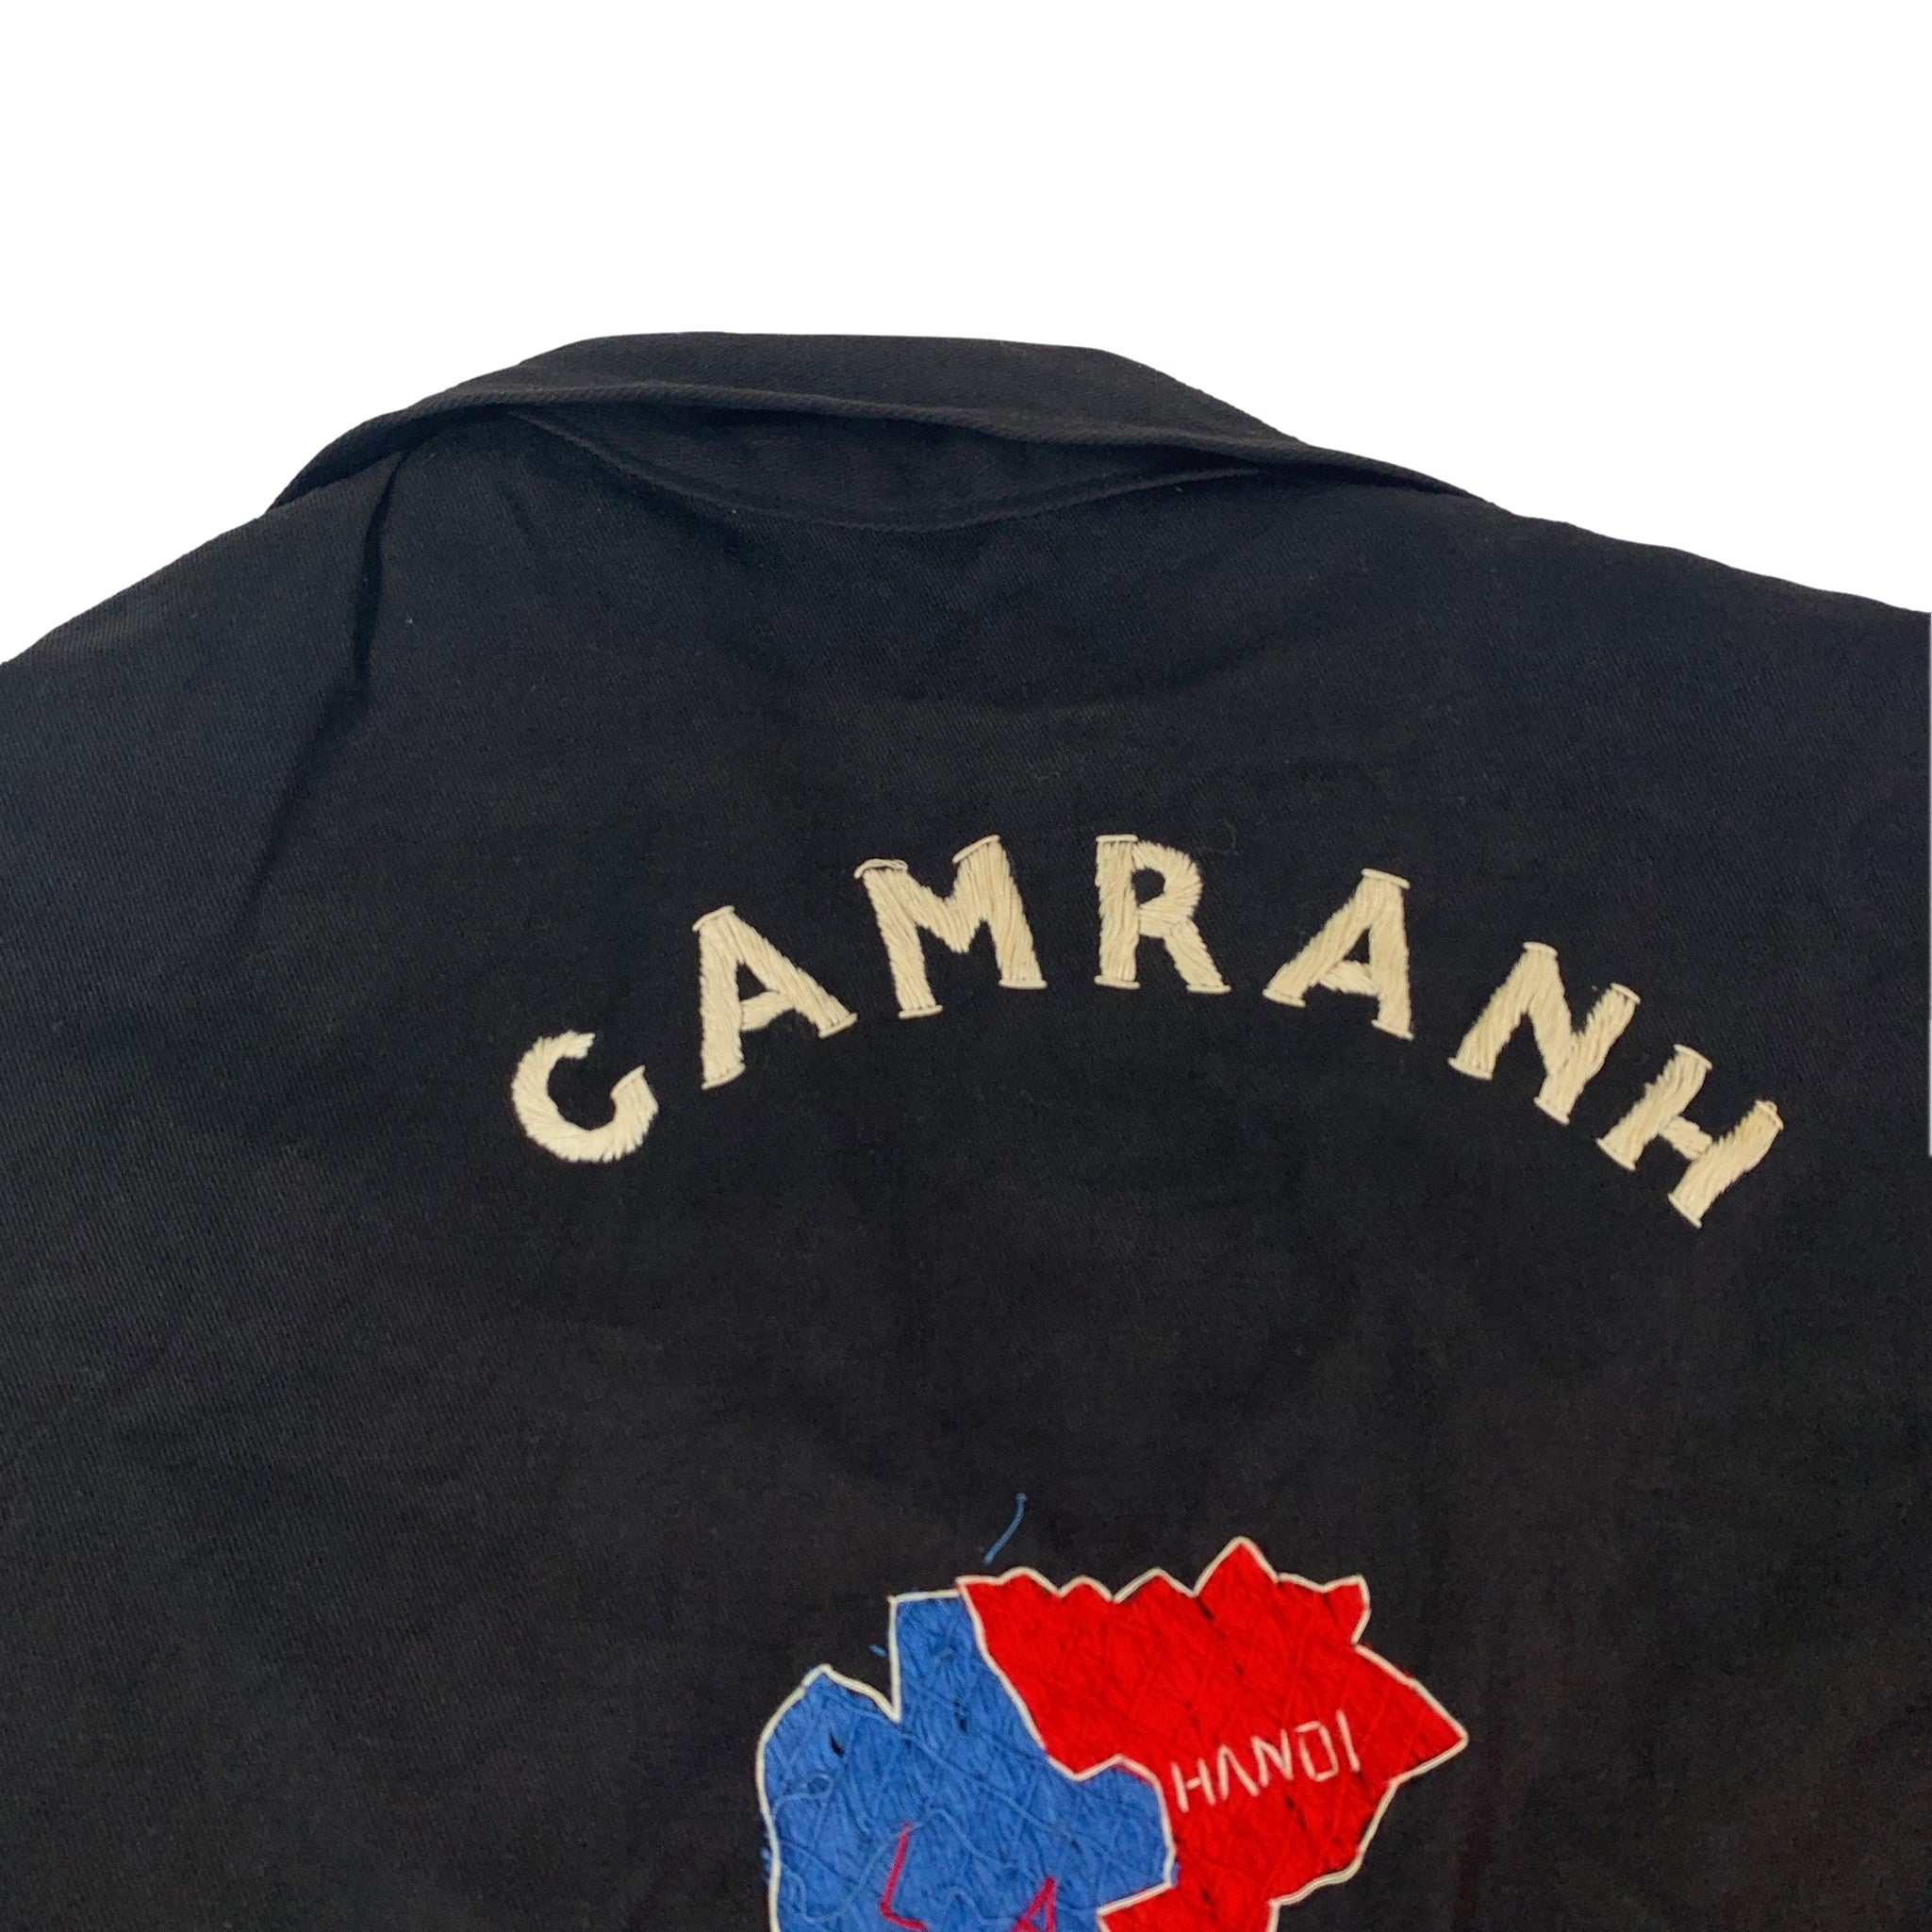 "Vintage Black Vietnam War ""Camranh '67-'68"" Tour Jacket"